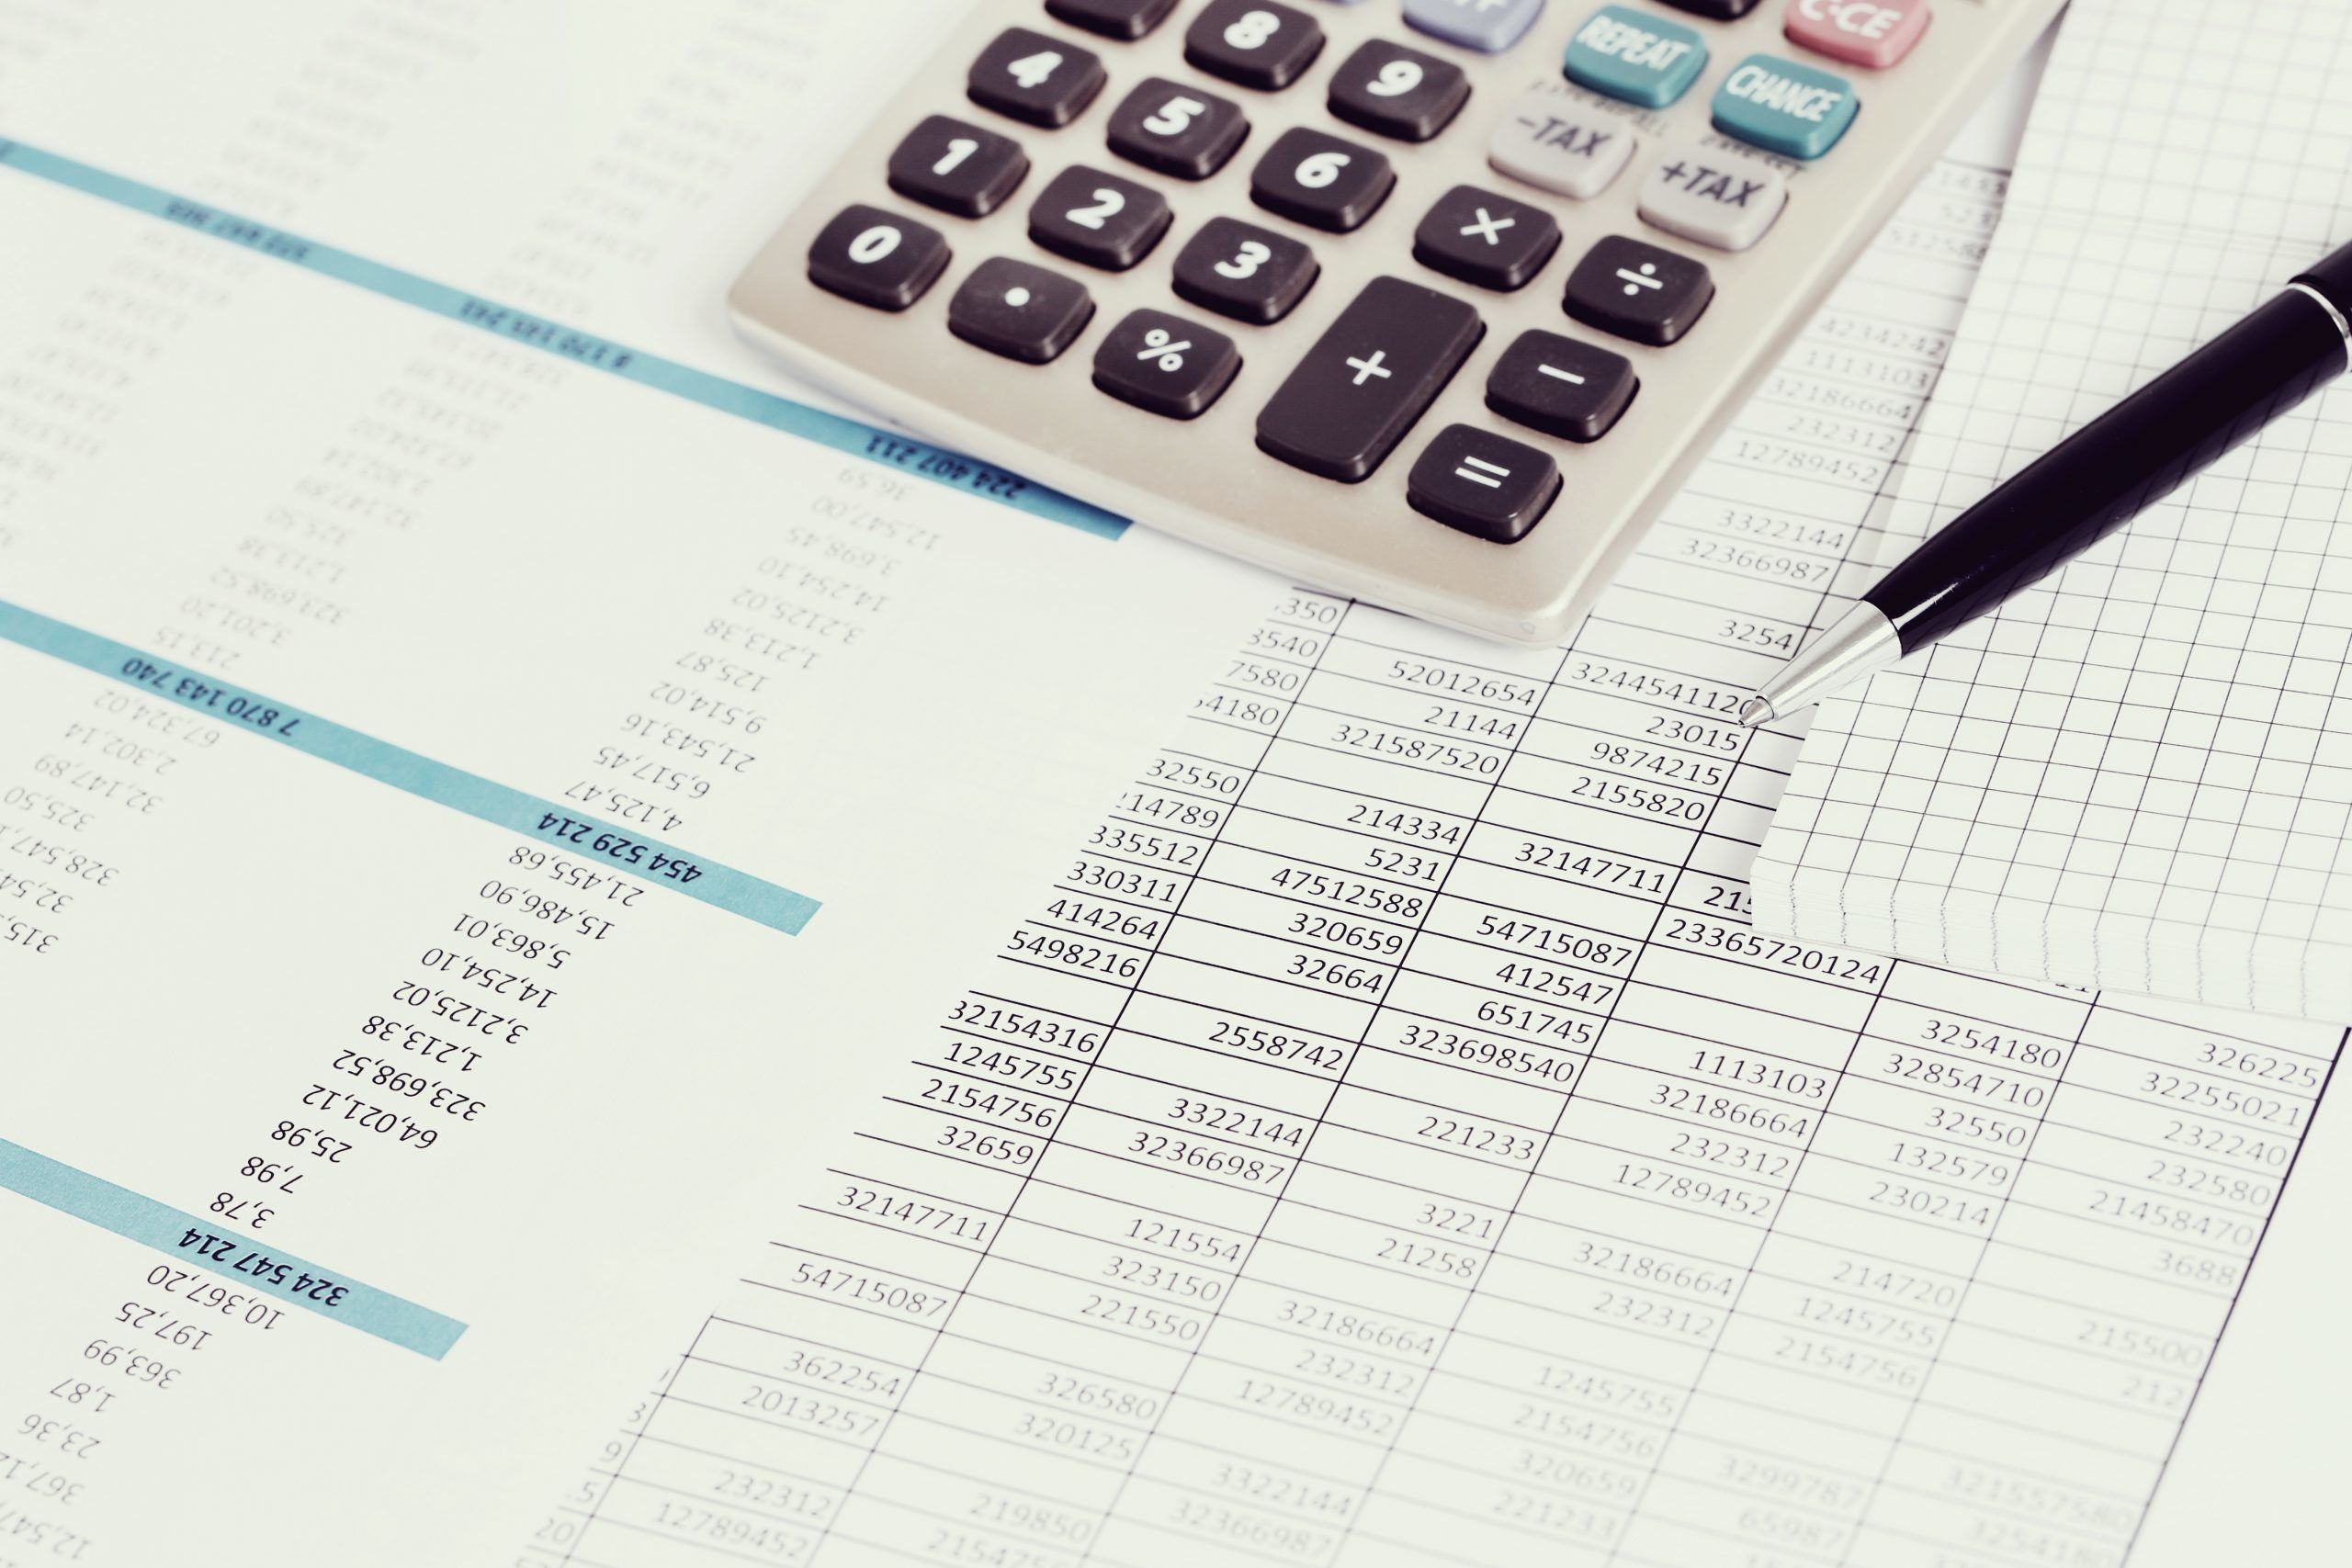 Create and Follow a Budget. Accounting documents on the table